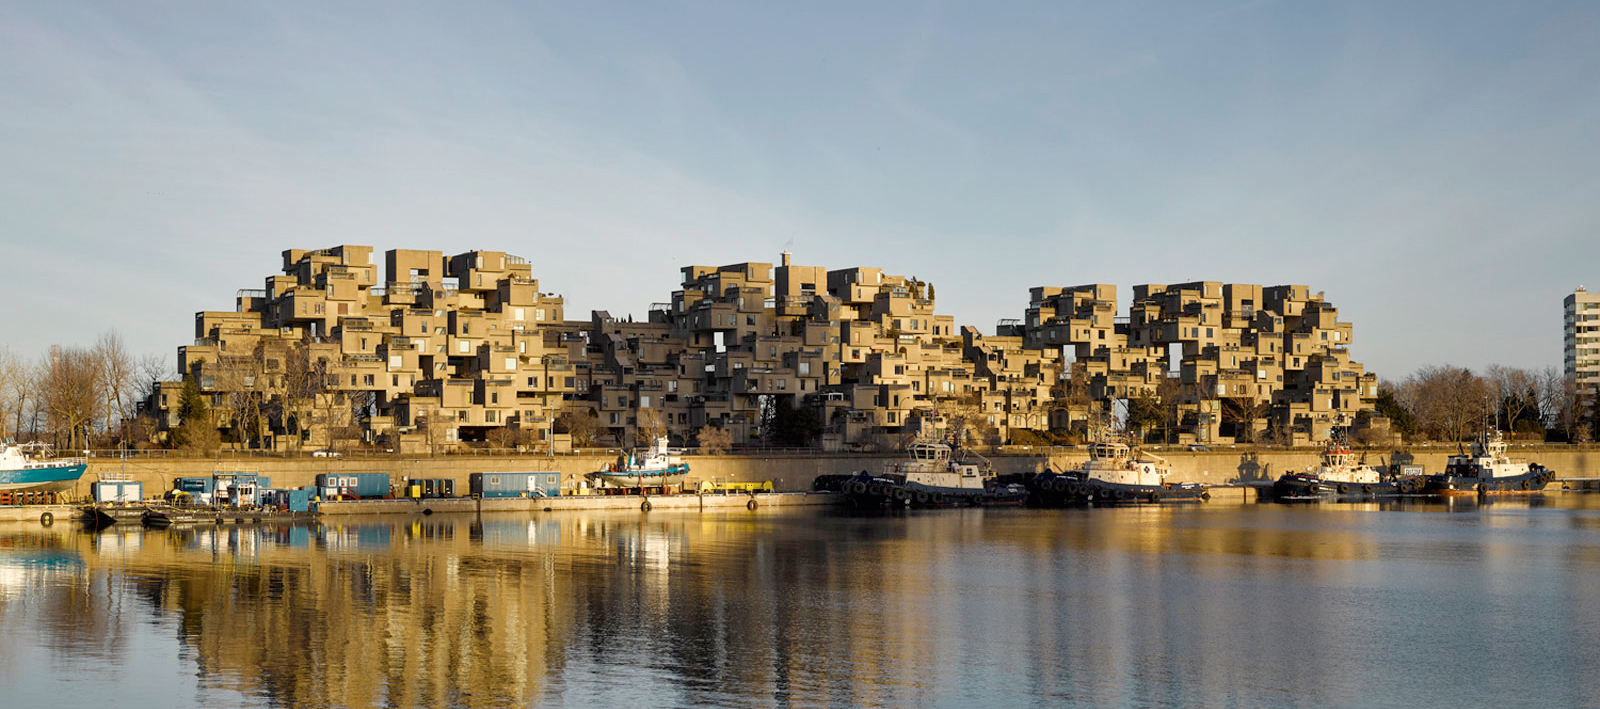 Exterior view of Moshe Safdie's modular housing complex named Habitat 67 in Montreal. Photograph by James Brittain